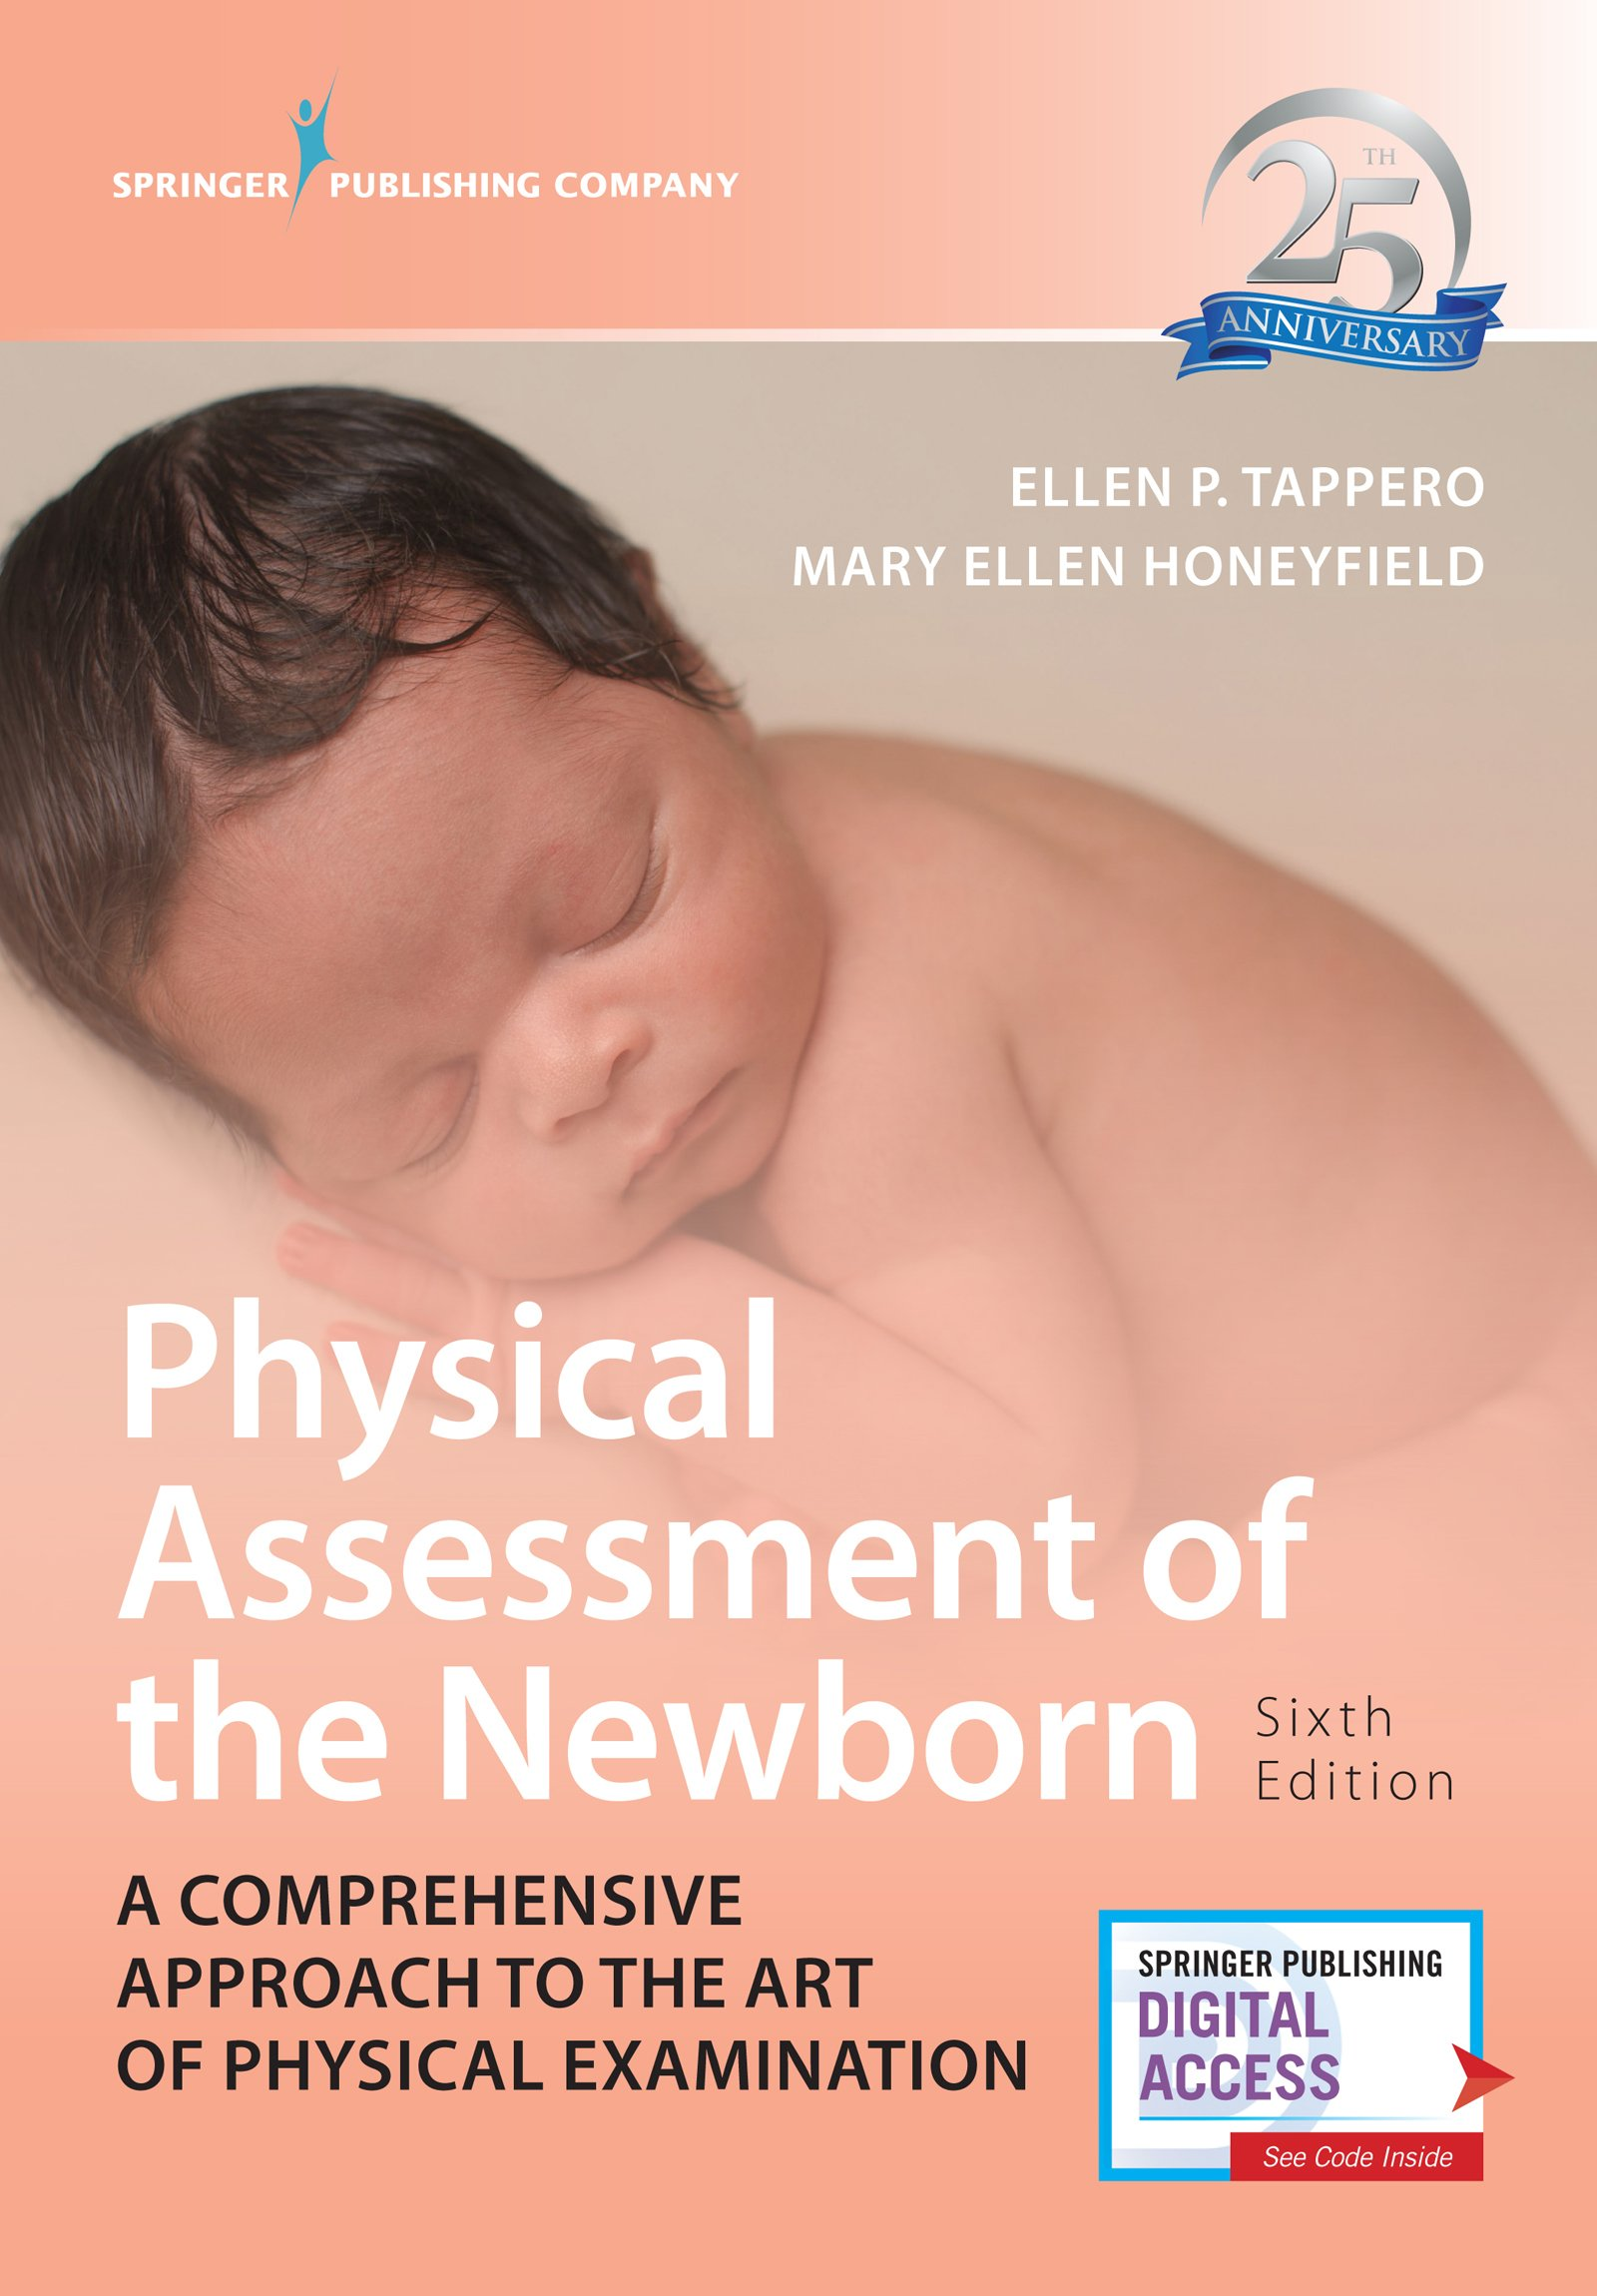 Physical Assessment Of The Newborn Sixth Edition A Comprehensive Approach To The Art Of Physical Examination Revised 25th Anniversary Edition Tappero Dnp Rn Nnp Bc Ellen P Honeyfield Dnp Rn Nnp Bc Mary Dubowitz et al, clinical assessment of gestational age in the newborn infant. physical assessment of the newborn